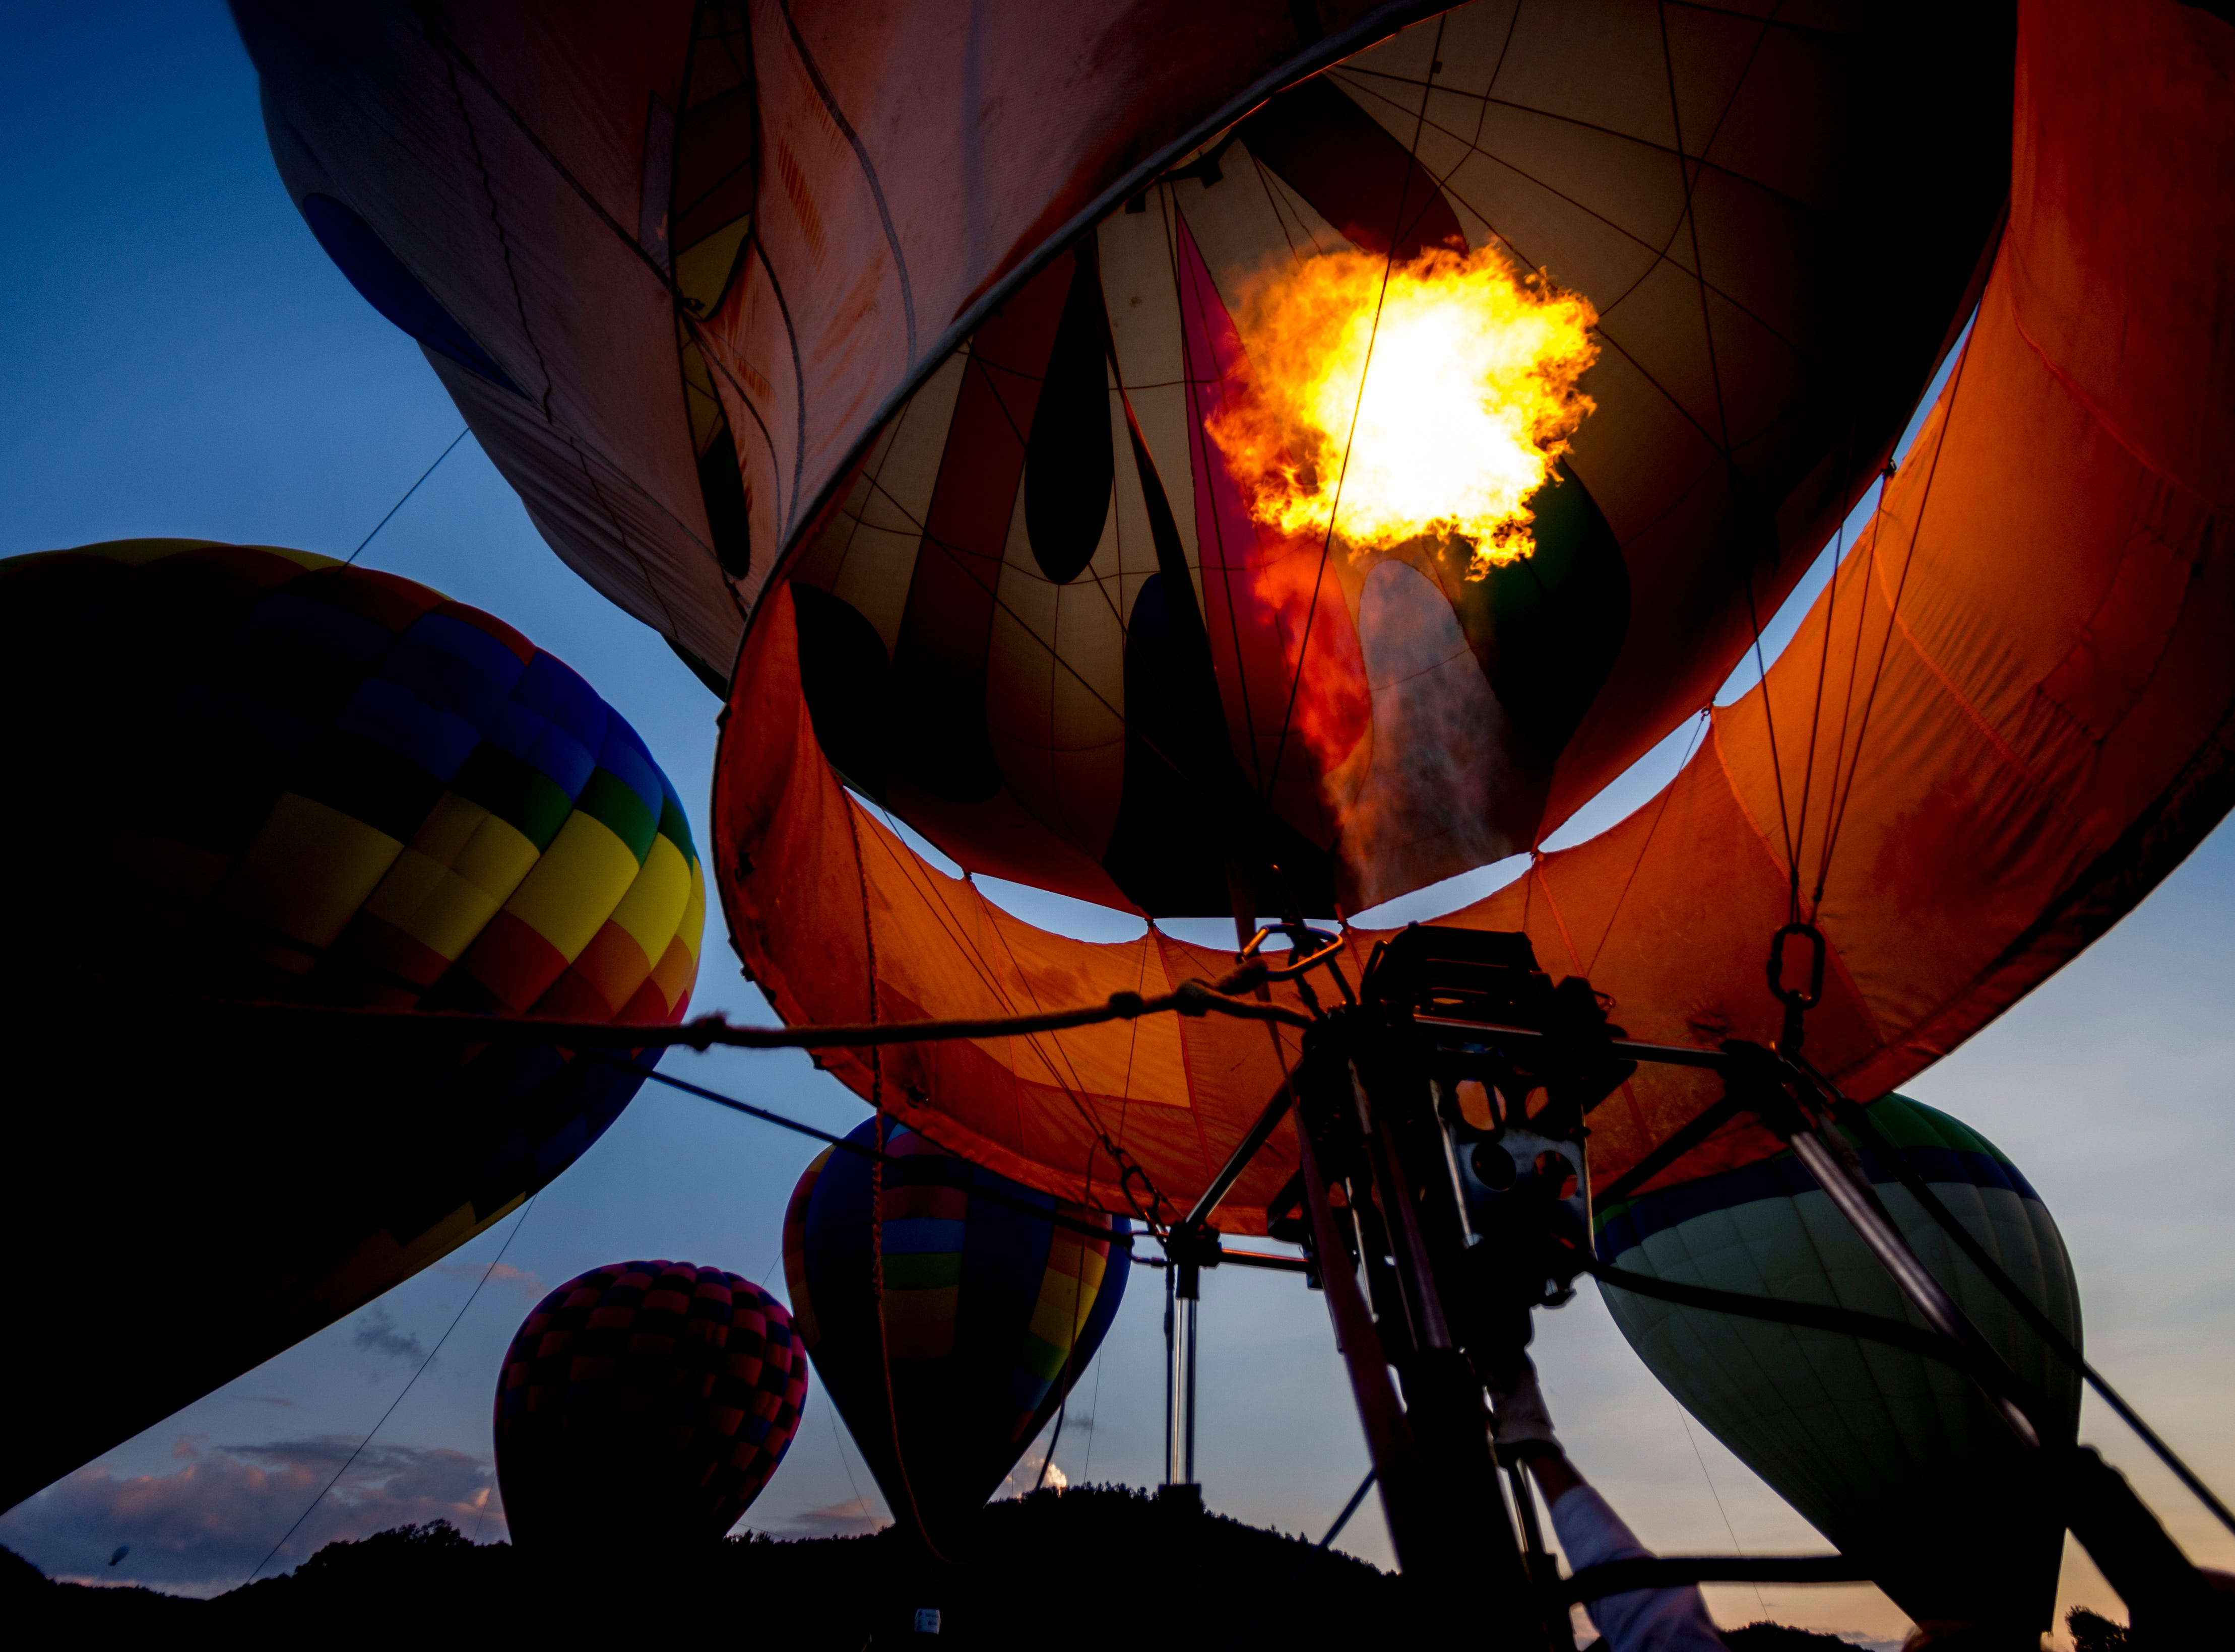 The propane burners blast heat into the hot air balloons at the second annual Smoky Mountain Balloon Festival in Townsend, Tennessee on Saturday, August 18, 2018. The festival featured several hot air balloons, food trucks, wine tasting and live entertainment.